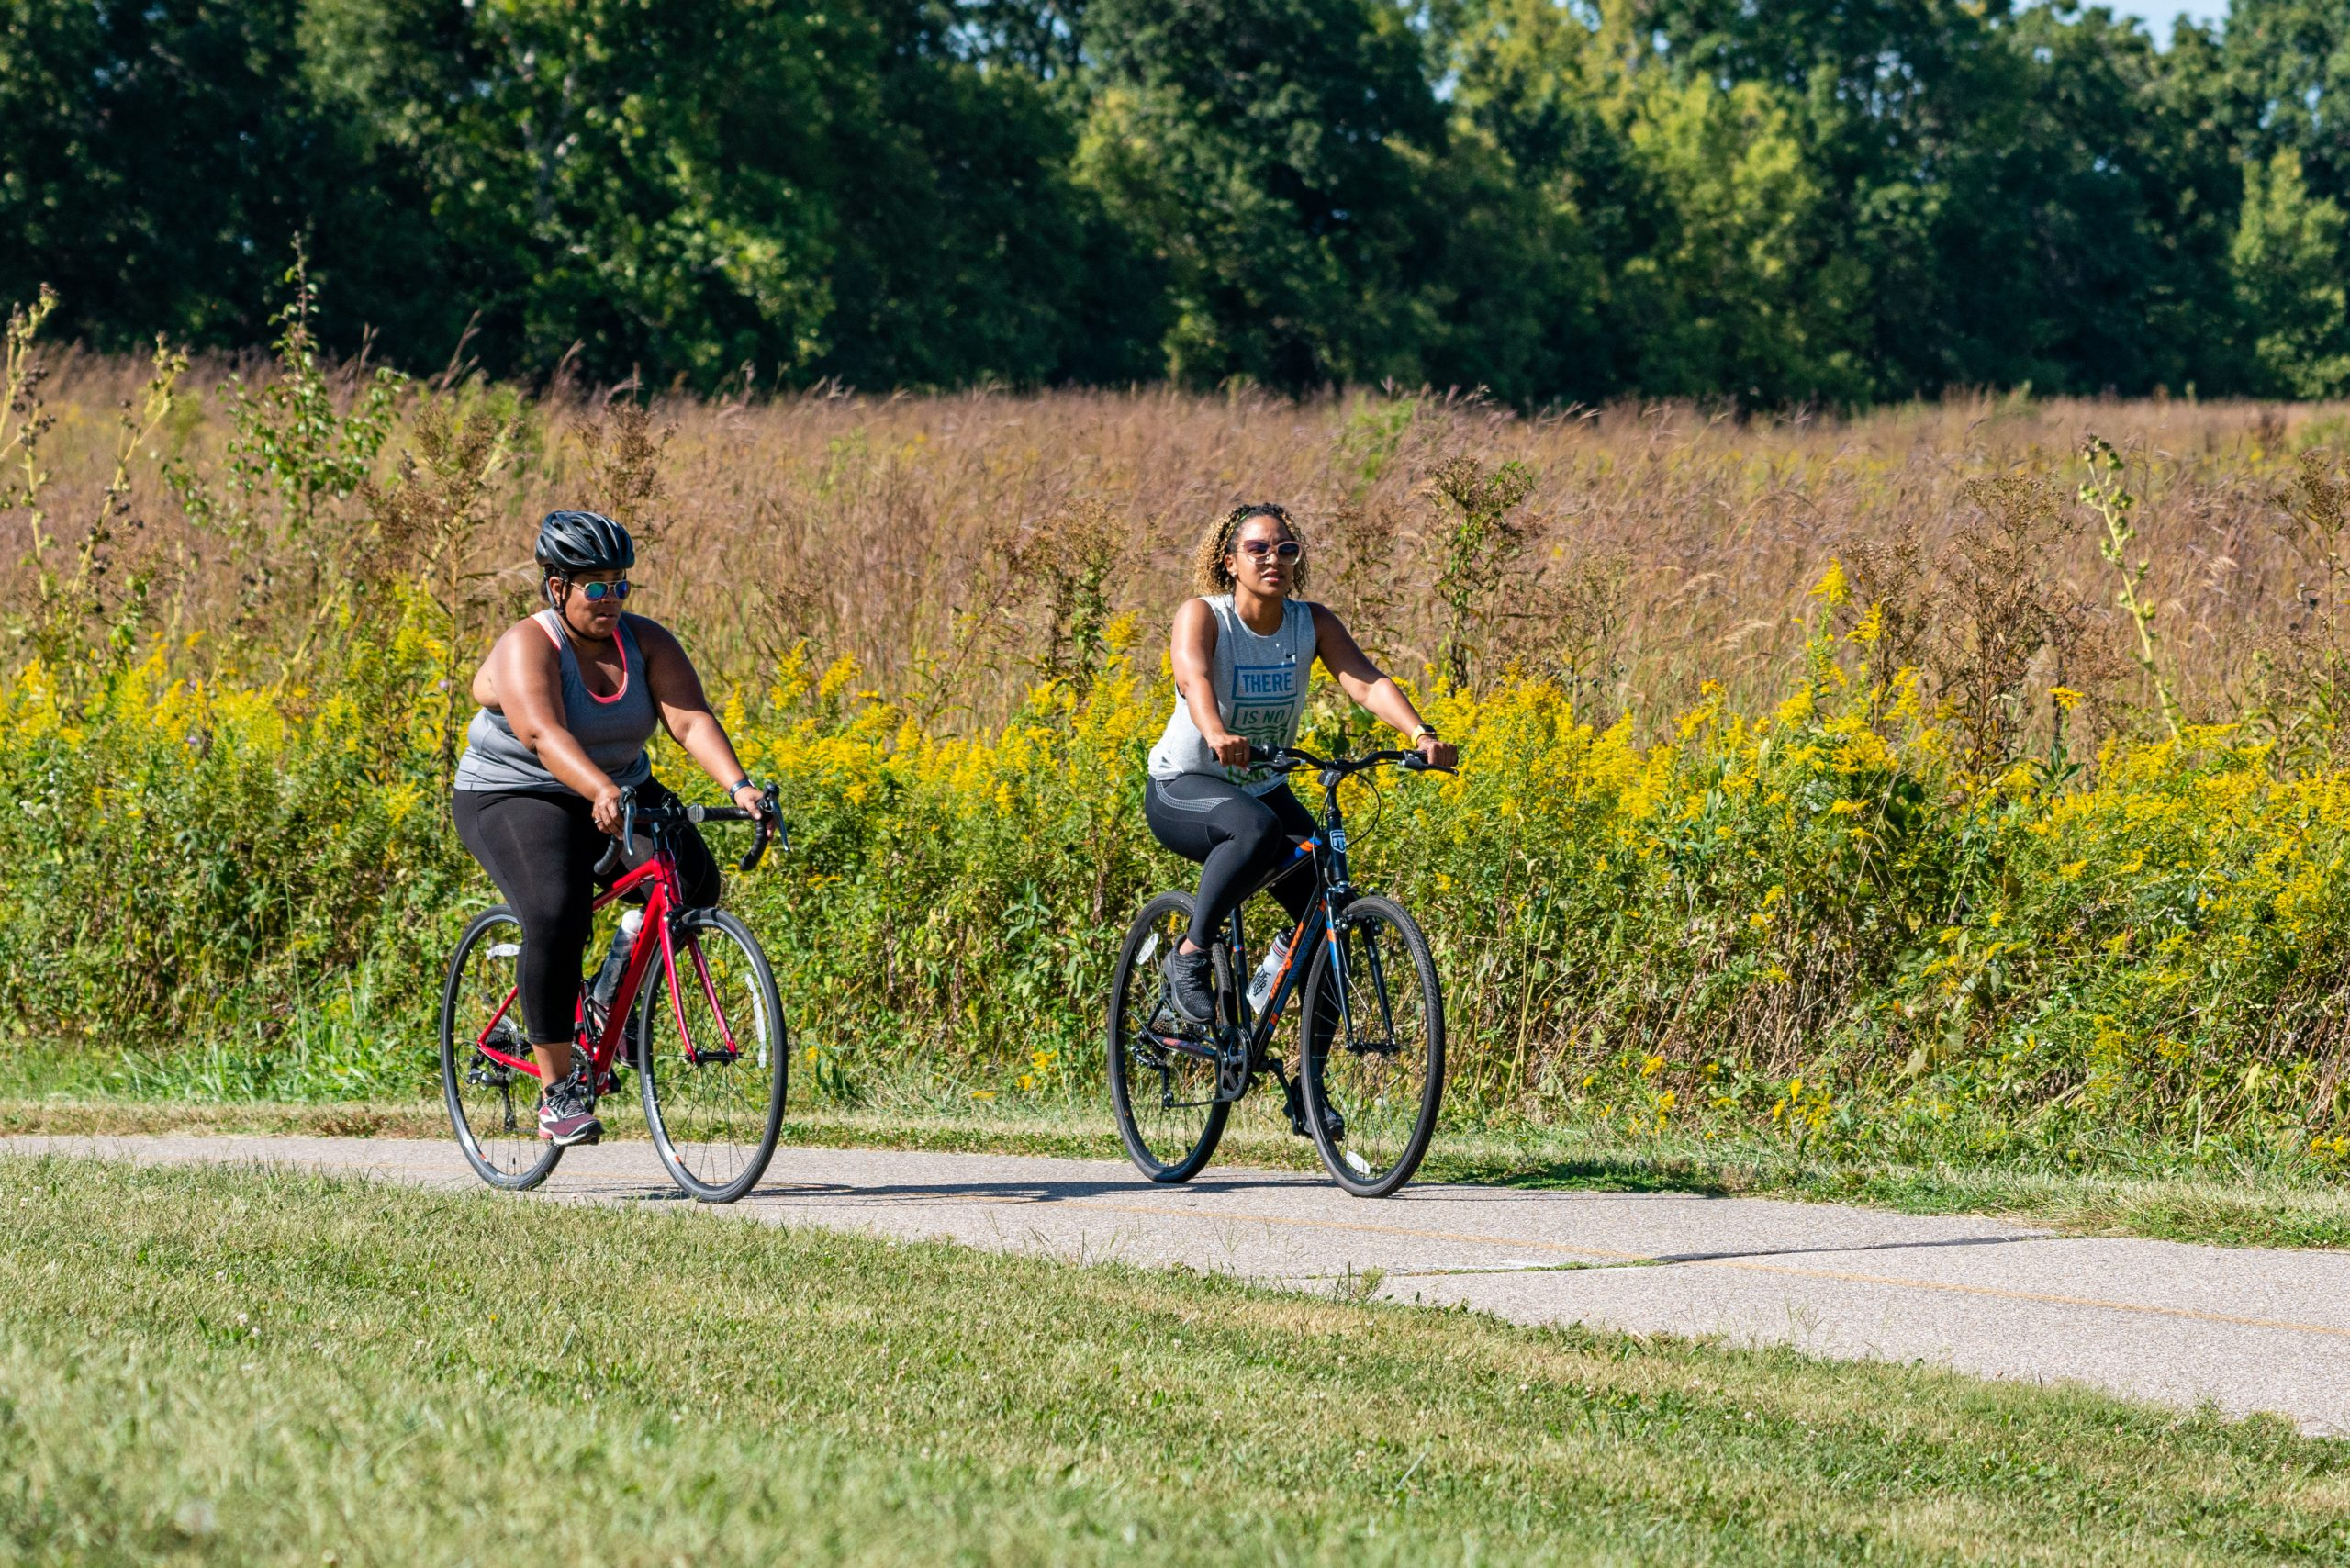 Two women ride their bicycles at a park on a sunny day.